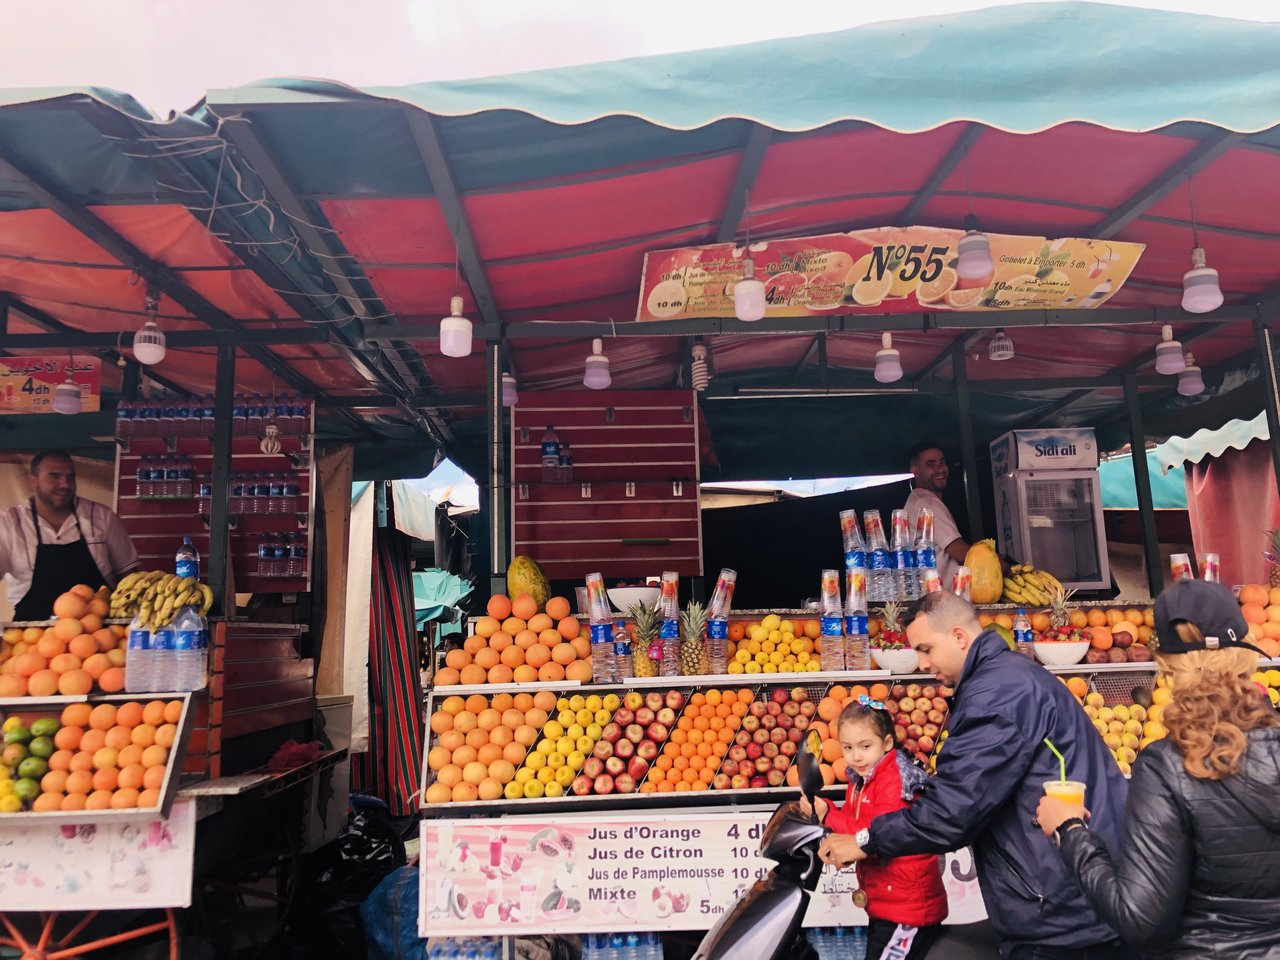 Juice stands in the square Jemaa el Fna    Photo taken by Filipinas C